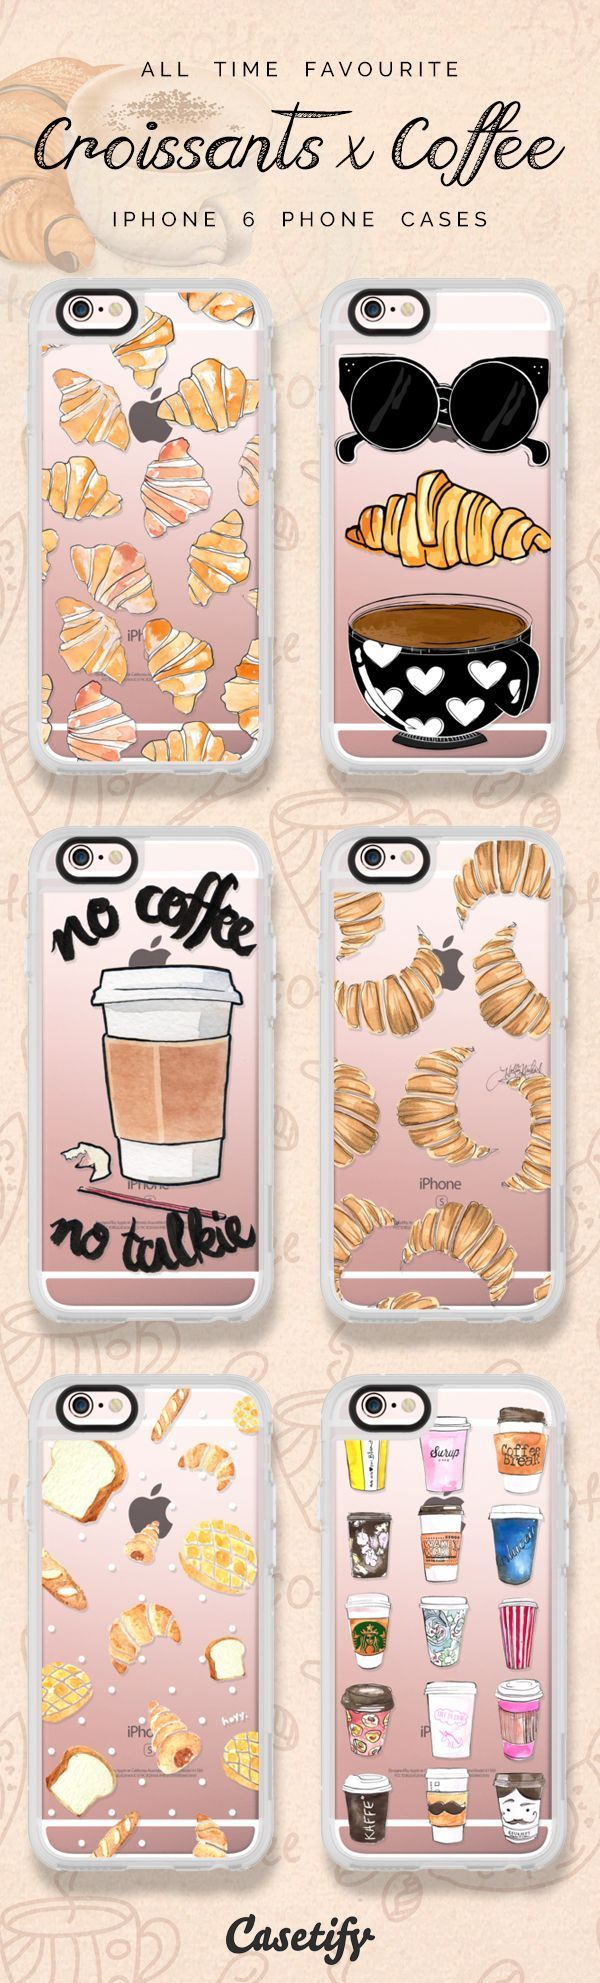 All time favourite coffee and croissant iPhone 6 protective phone case designs | Click through to see more iPhone phone case designs >>> https://www.casetify.com/artworks/0sHo0vXarC #food | @casetify #PhoneCase #iphone6case,